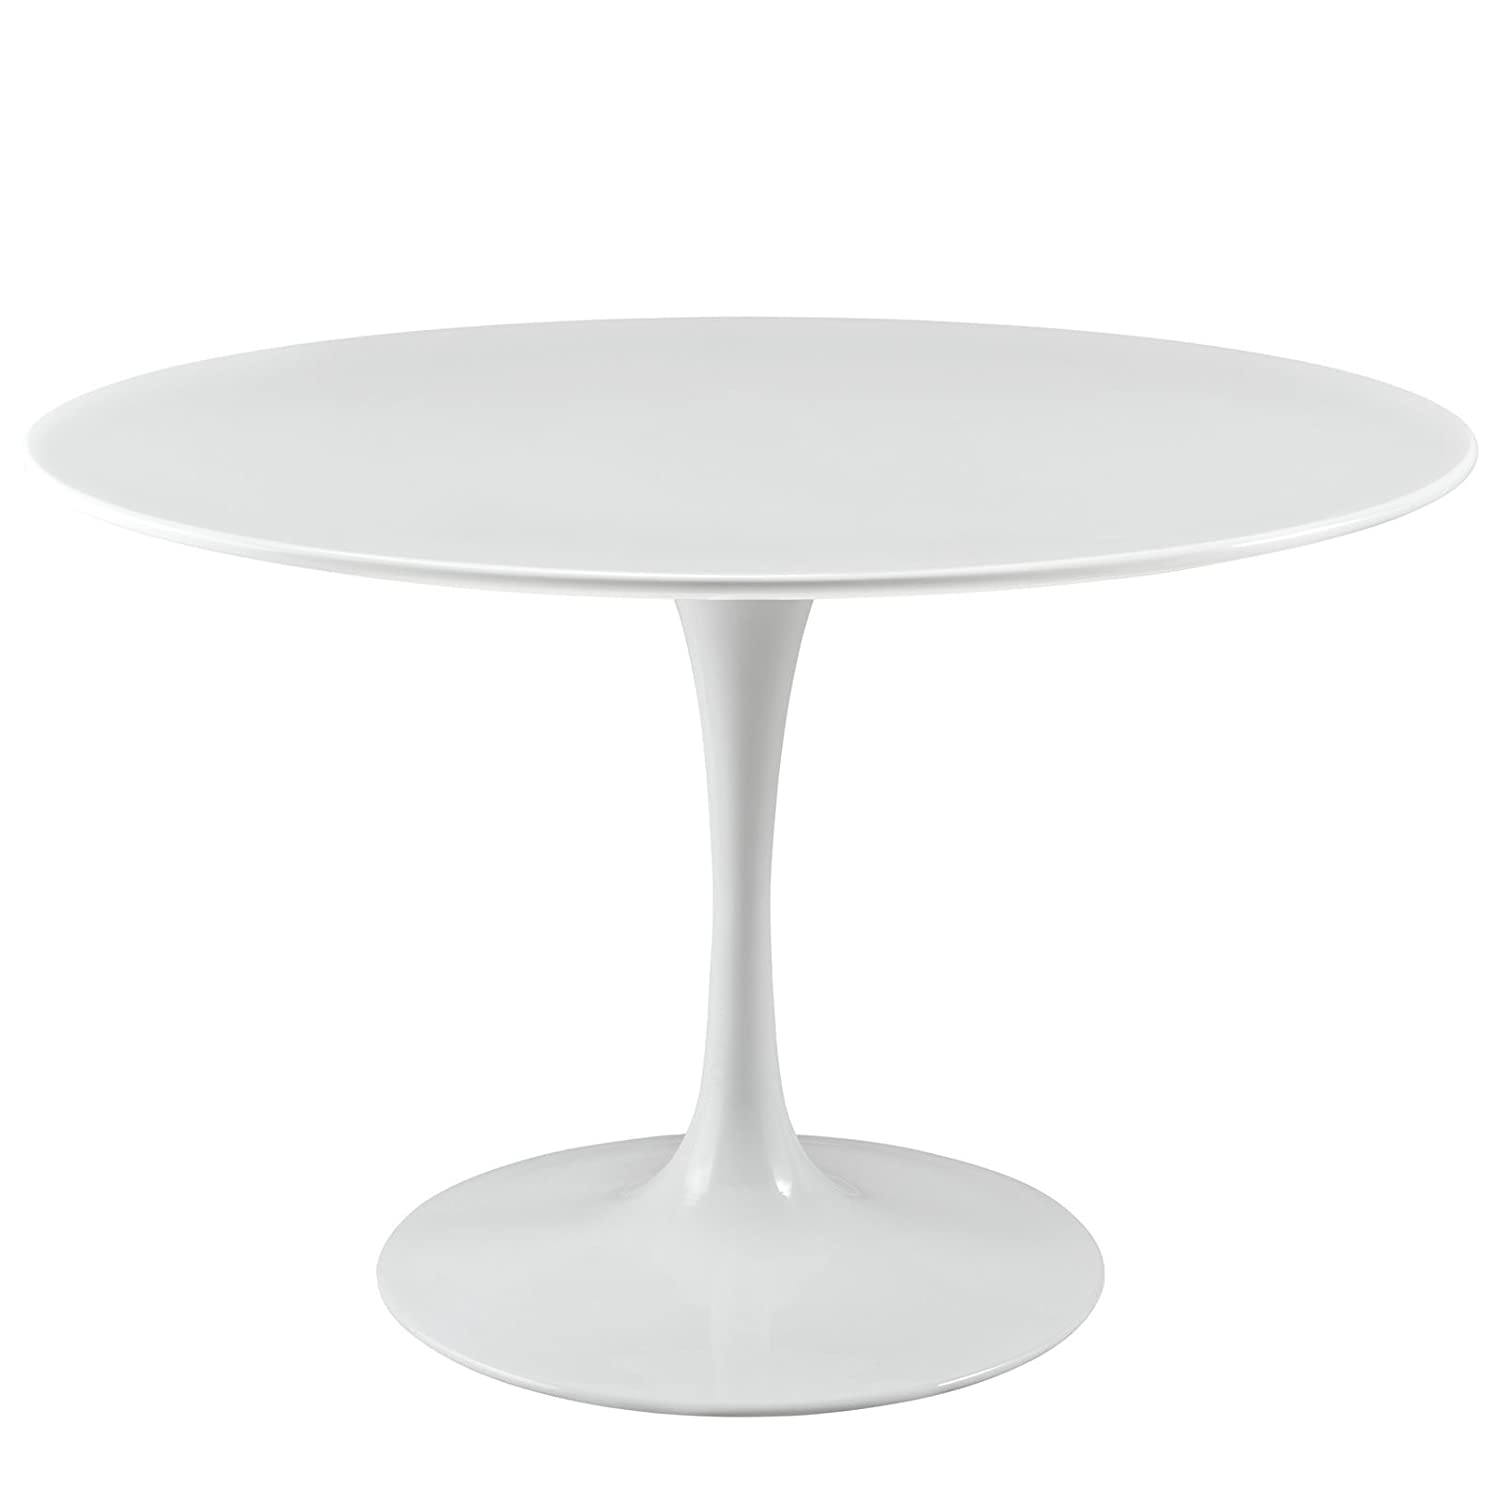 Amazoncom Modway Lippa 47 Wood Top Dining Table in White